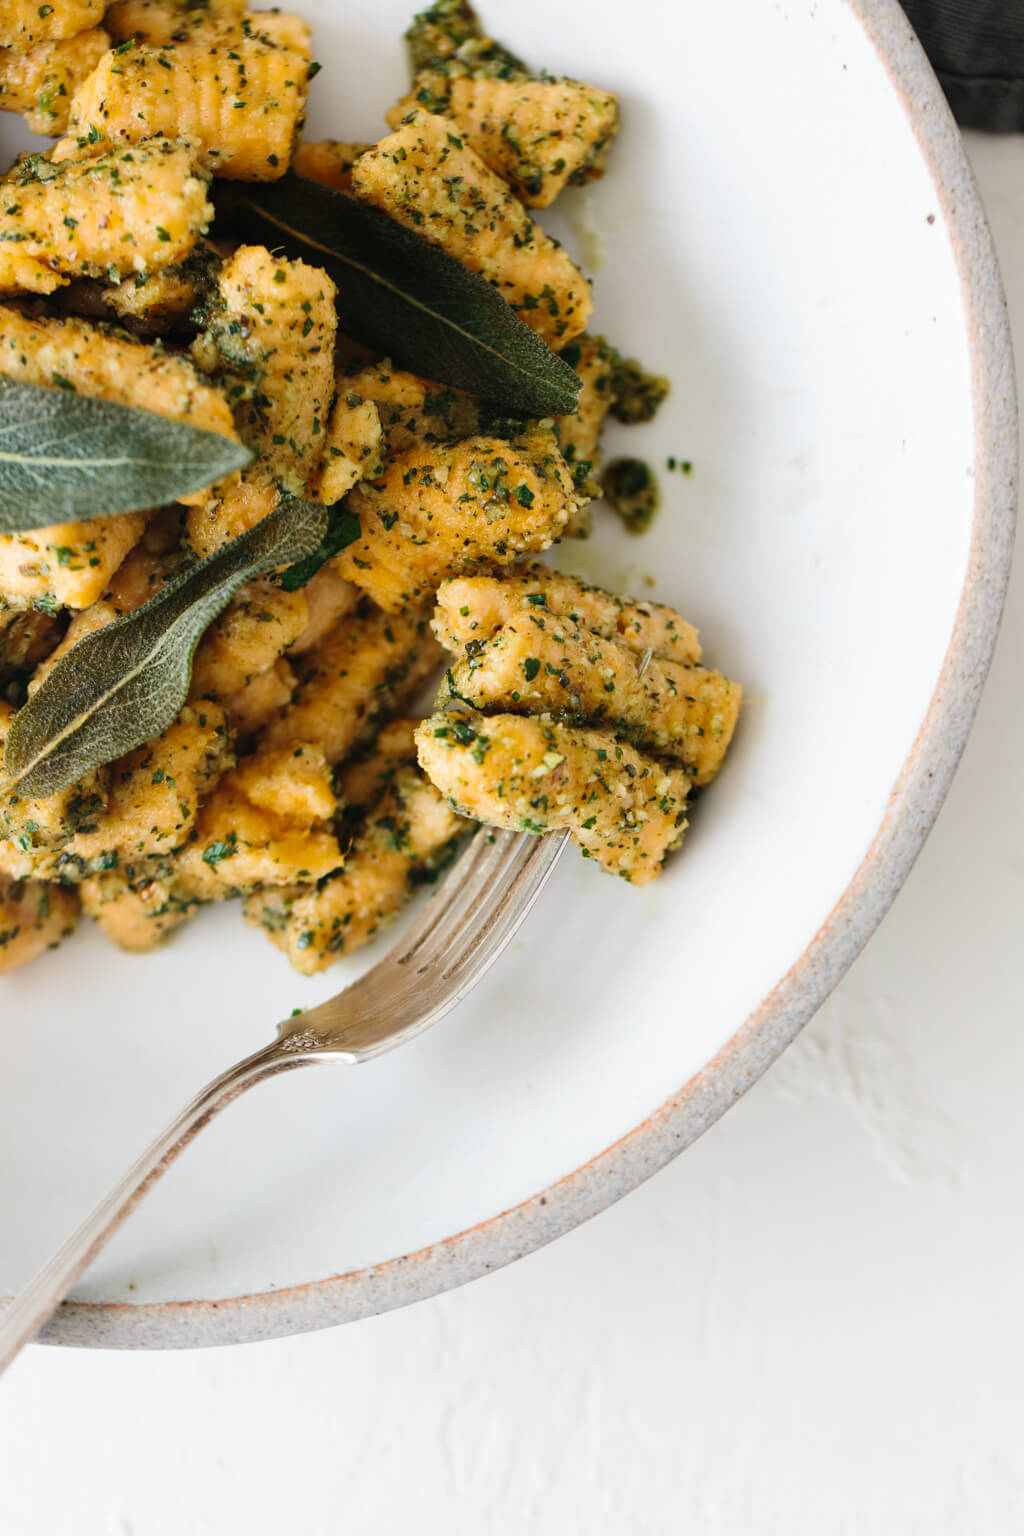 (gluten-free, paleo) Sweet potato gnocchi topped with a delicious sage walnut pesto. It's the perfect hearty and savory meal for fall and winter.